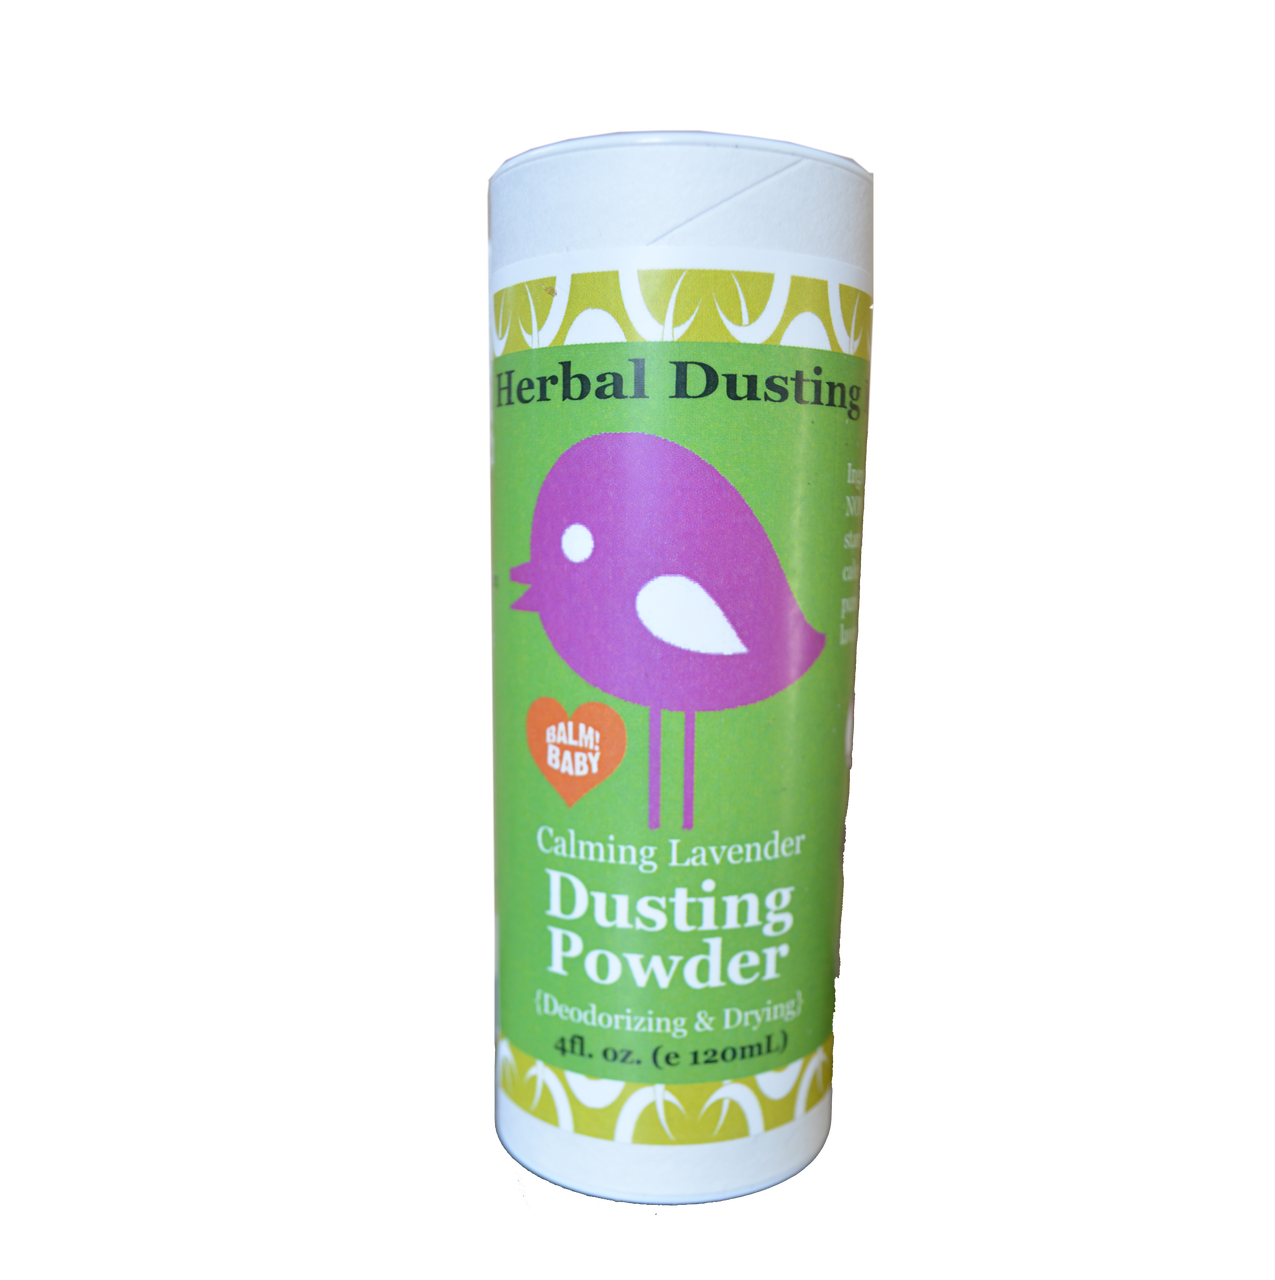 BALM! Baby Herbal Dusting Powder - 4oz.